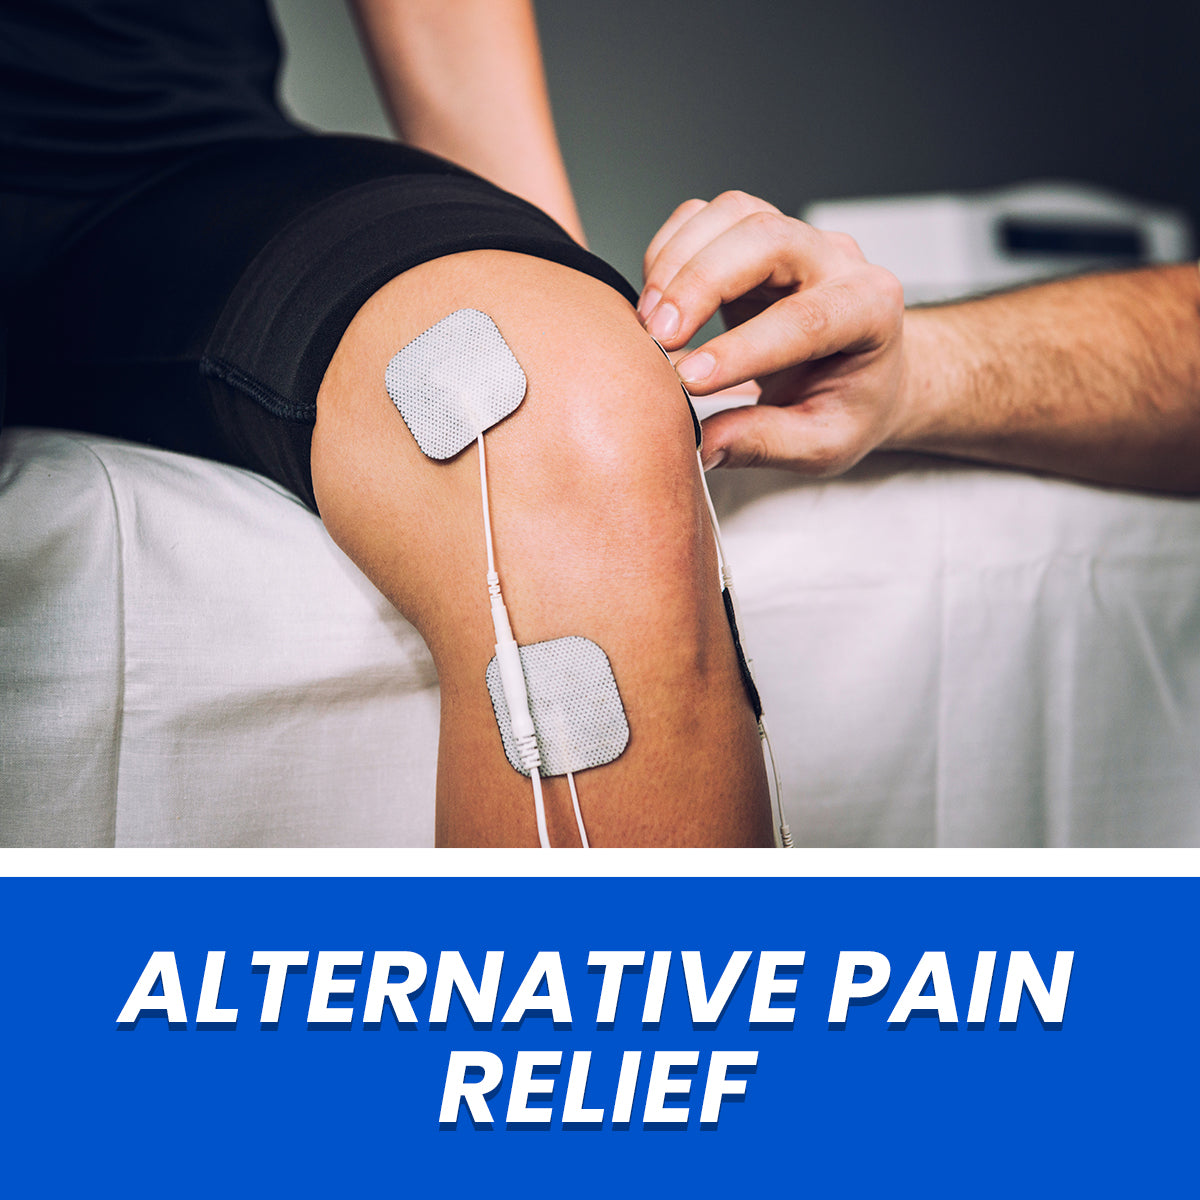 Alternative Pain Relief